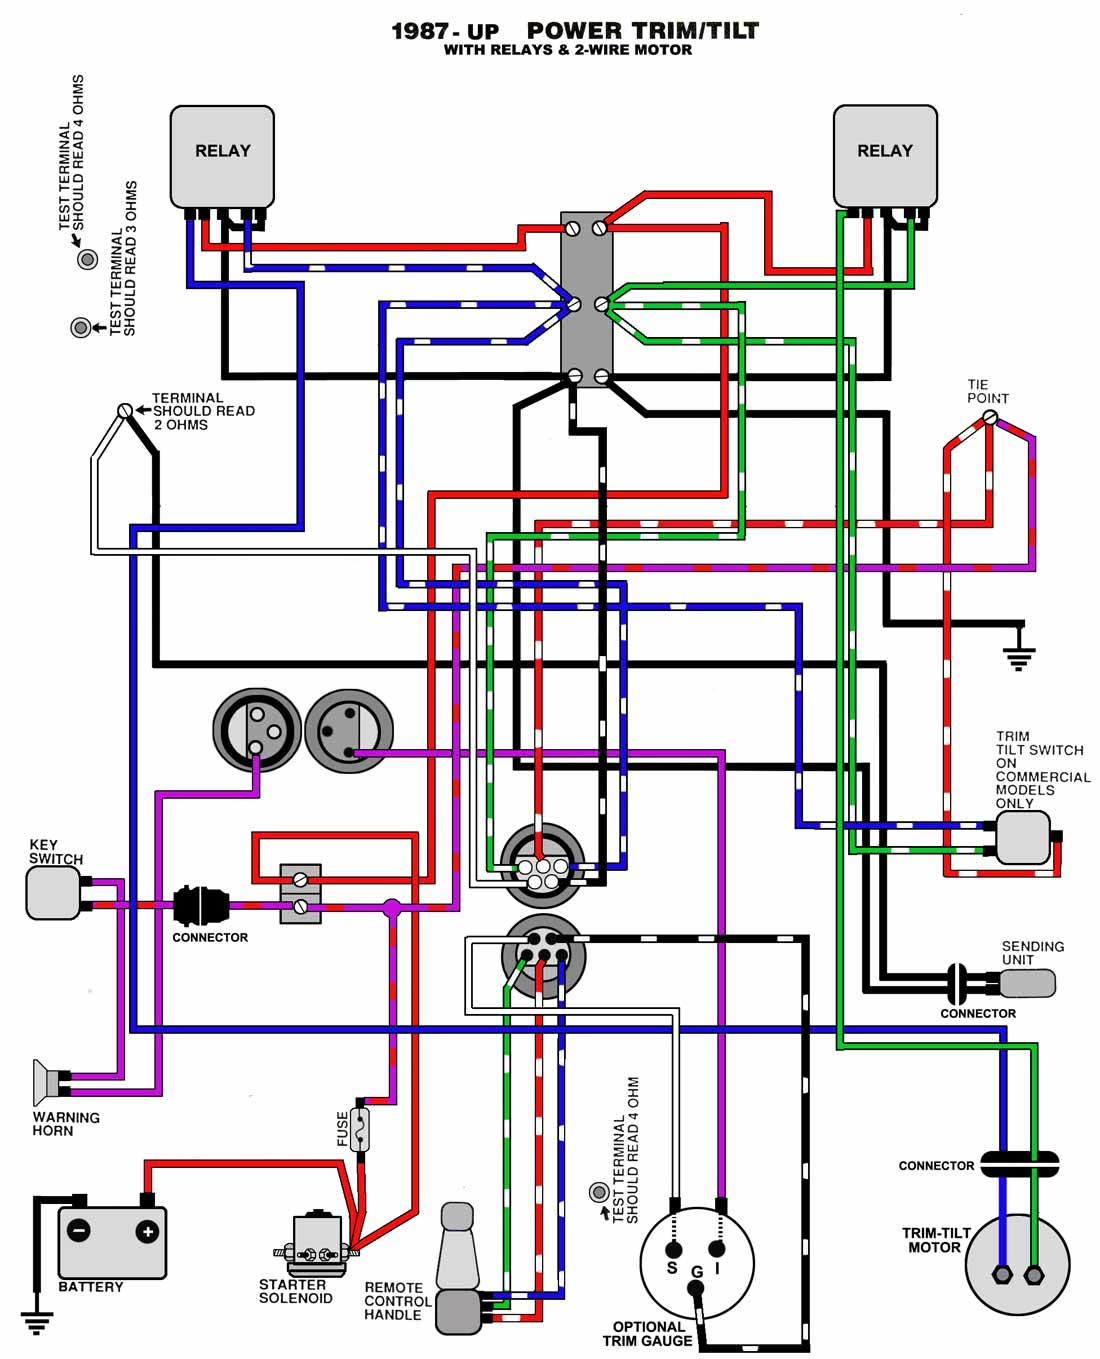 TnT_87_UP mastertech marine evinrude johnson outboard wiring diagrams evinrude key switch wiring diagram at reclaimingppi.co